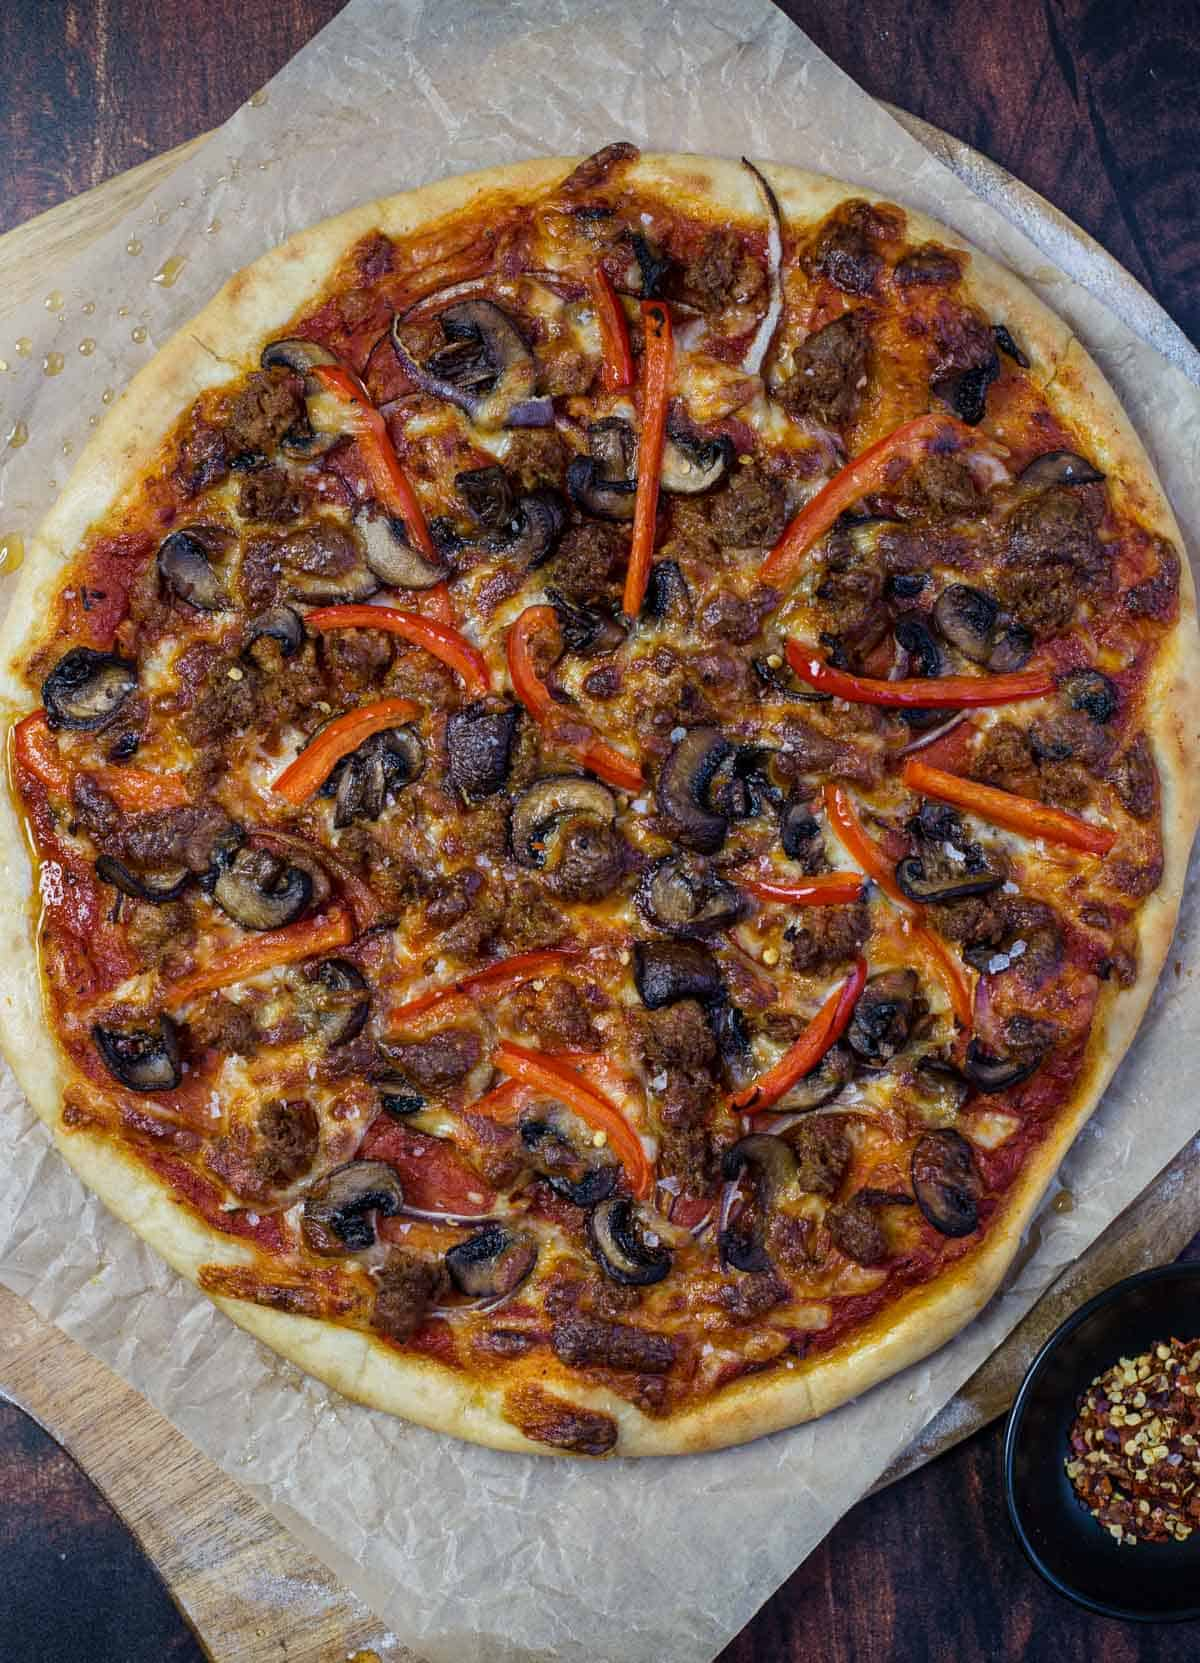 A Pellet Grilled Pizza Topped with Mushrooms, Sausage, and Peppers